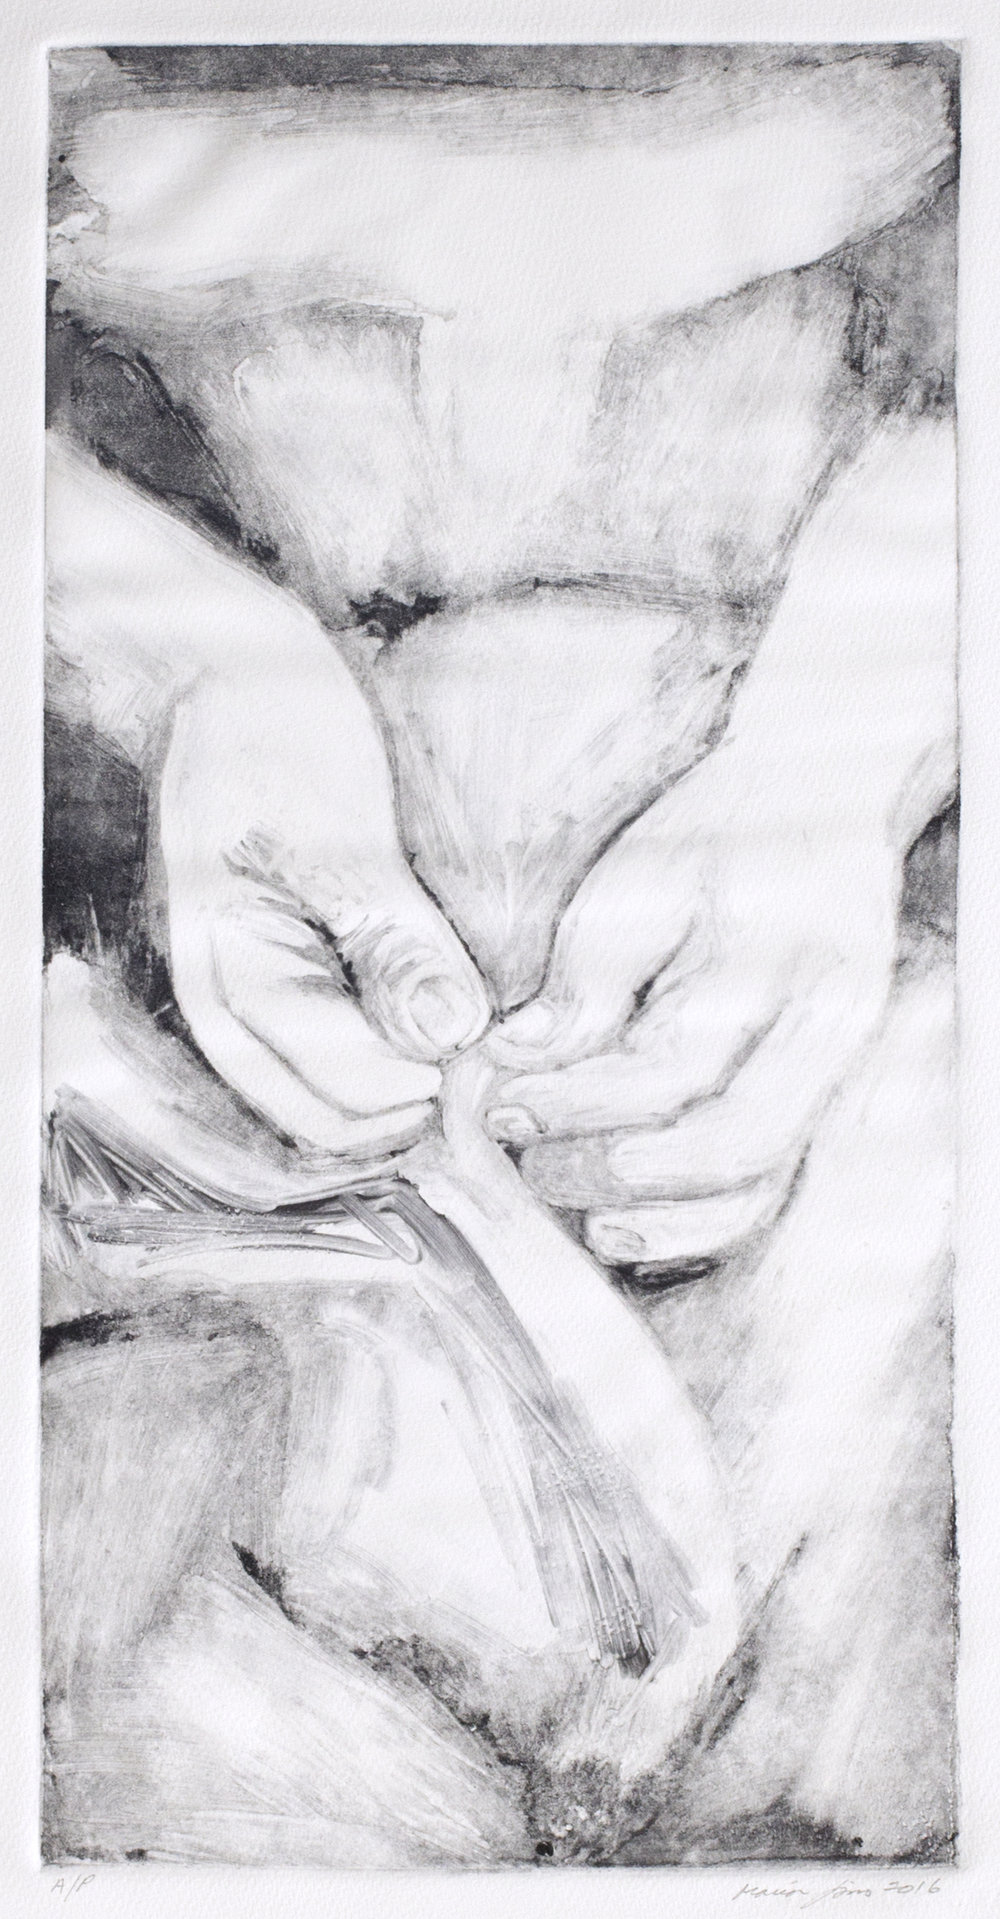 Sewing Hands (ghost print), 2016